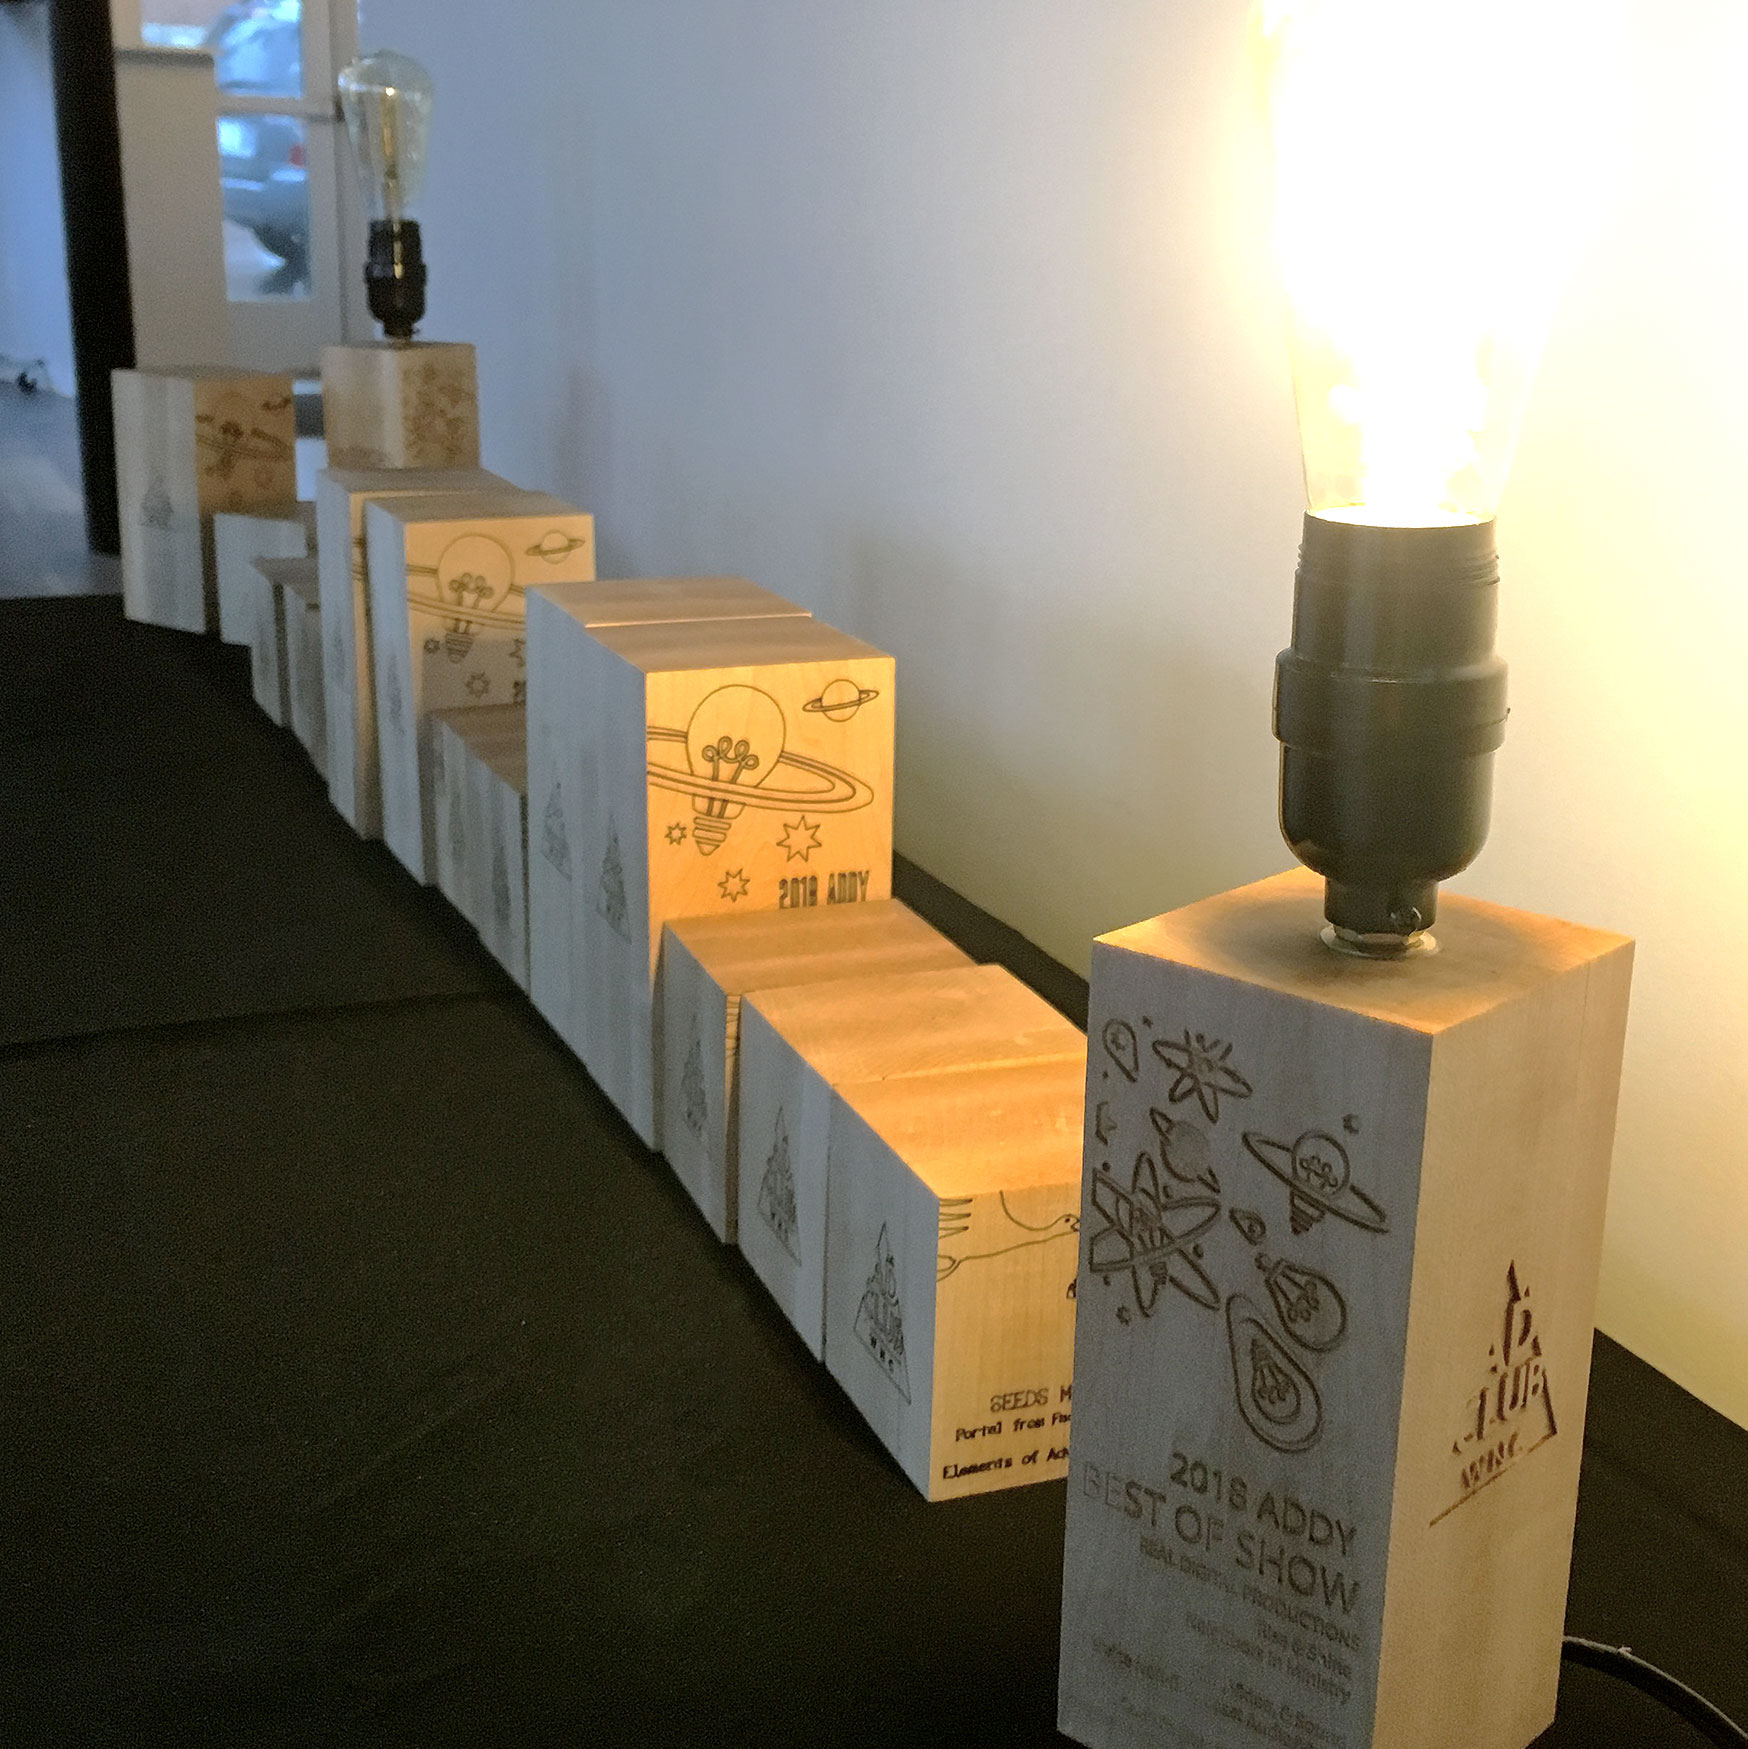 2019 Gala Best in Show Award, laser etched into wooden block with working lightbulb plugged in!